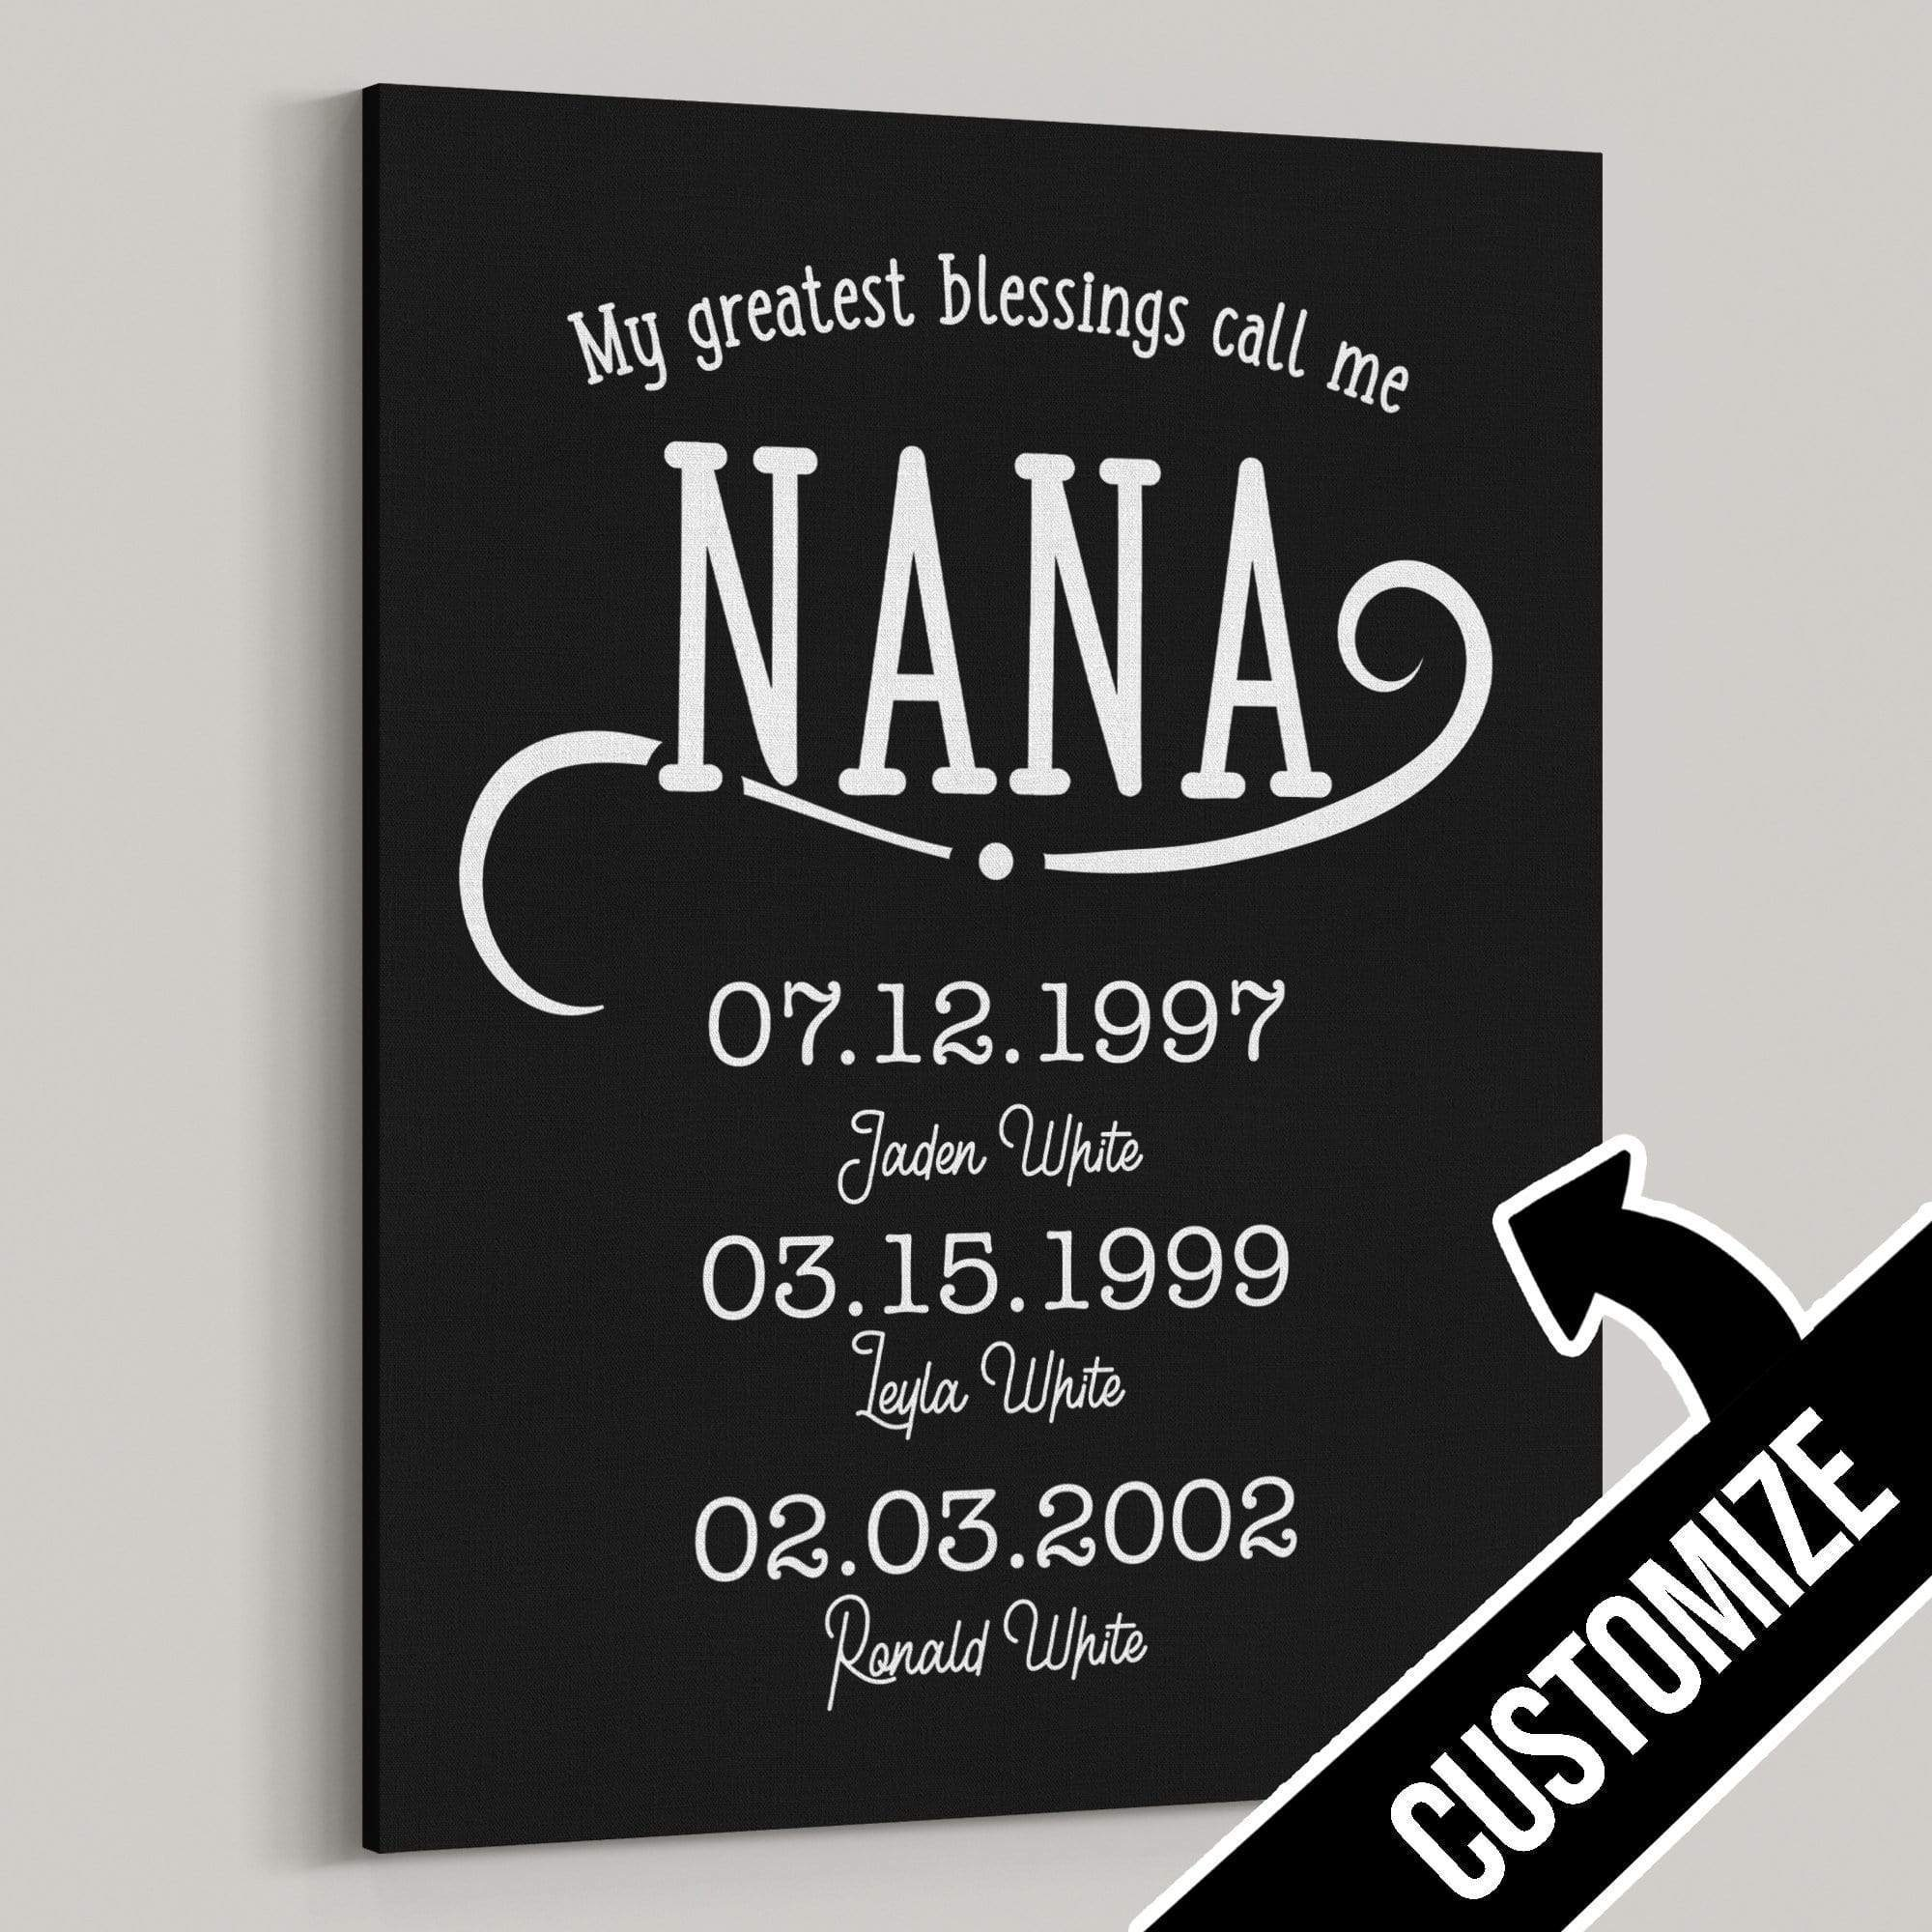 My Greatest Blessings Call Me Nana Personalized Canvas - Canvas Zone